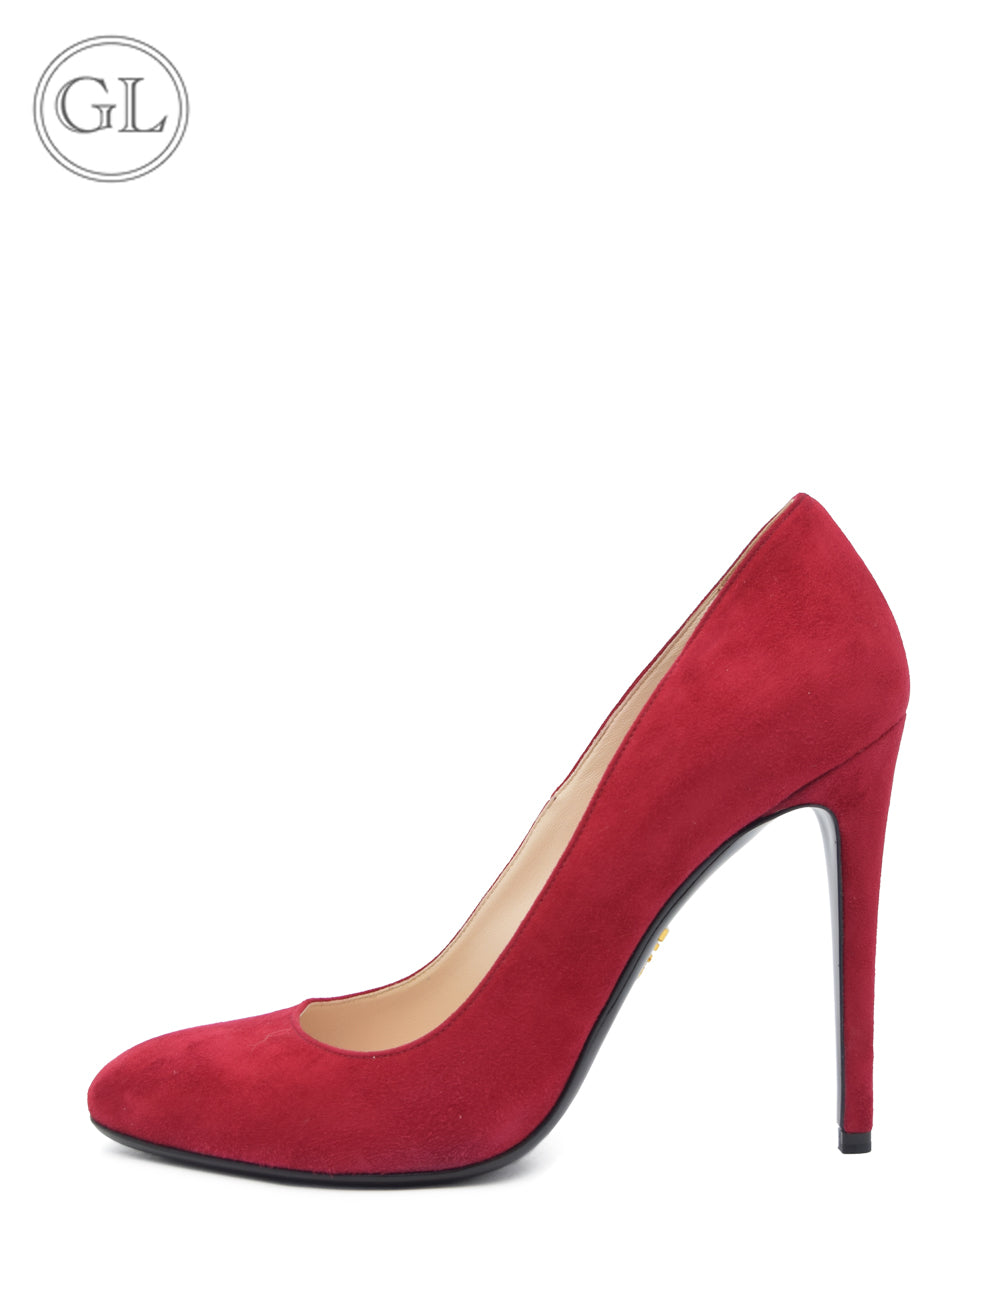 Prada Dark Red Suede Pumps - EU 38